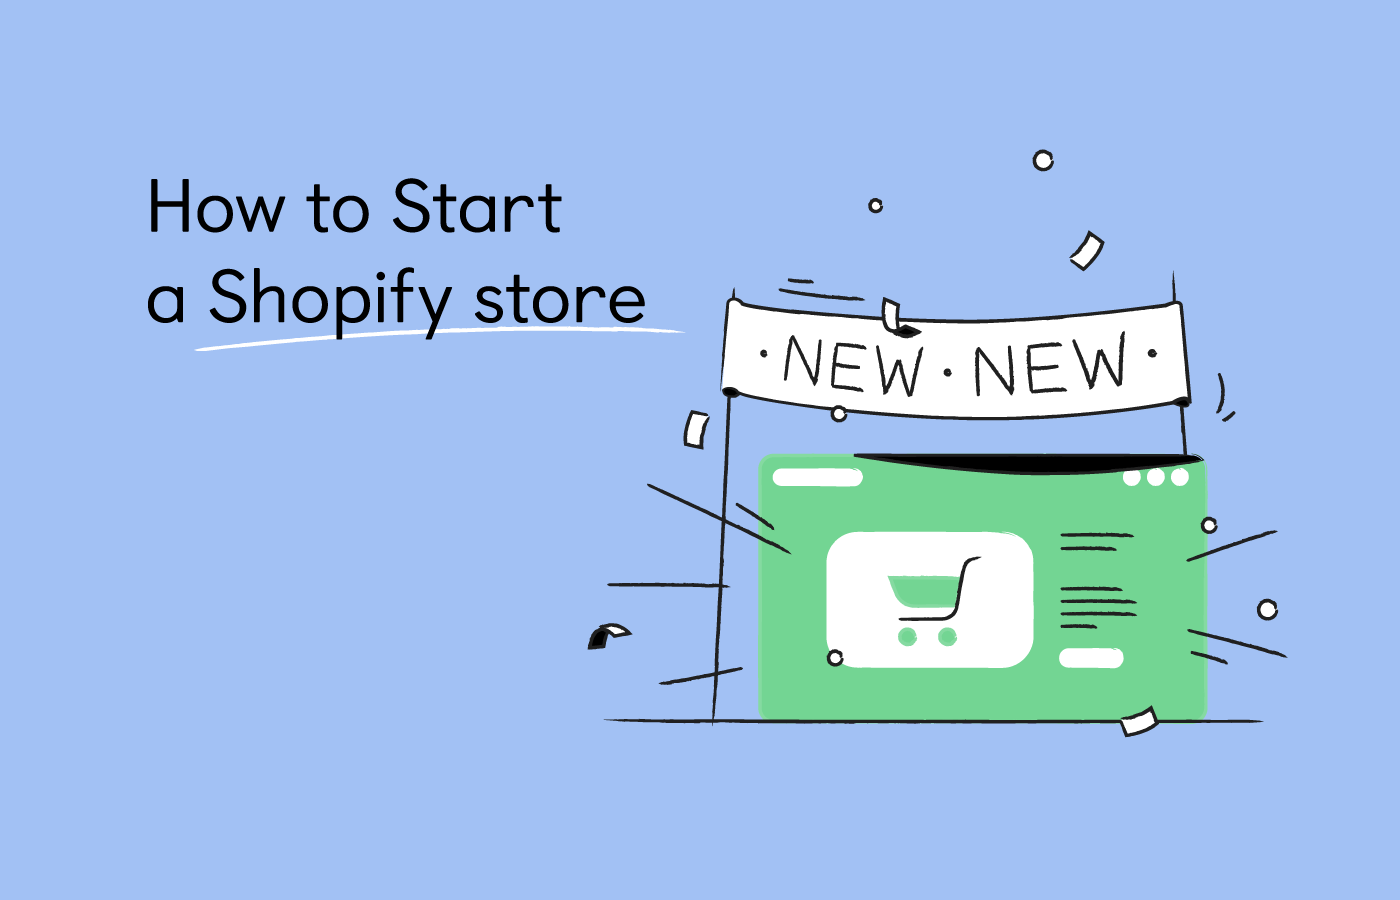 How to Start a Shopify Store: Guide to Starting a Shopify Store 2021